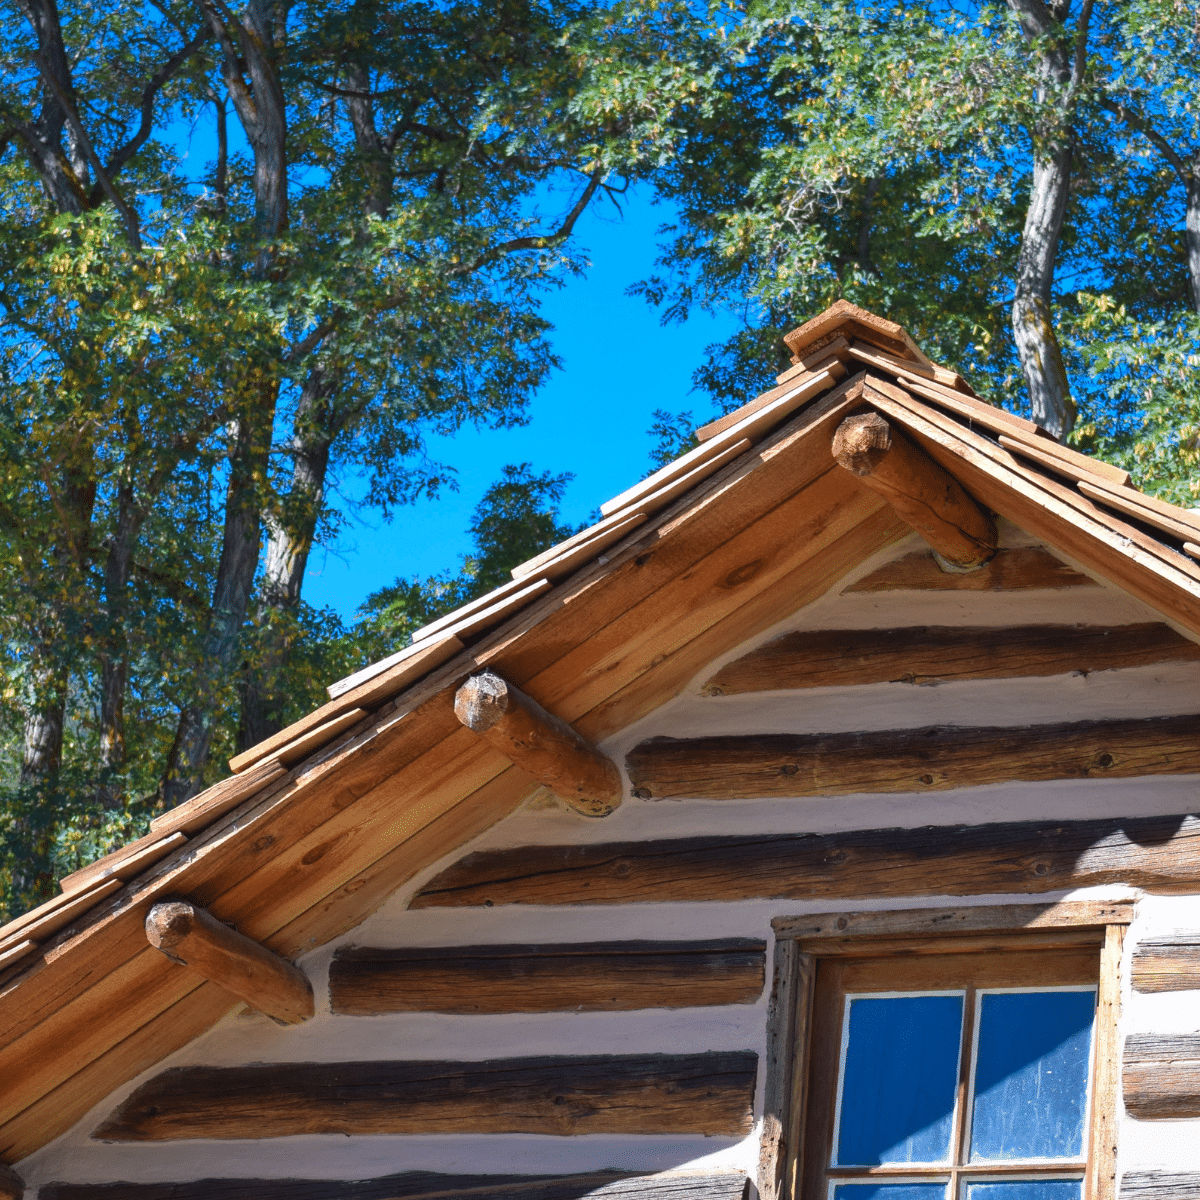 Roof of a Log Home